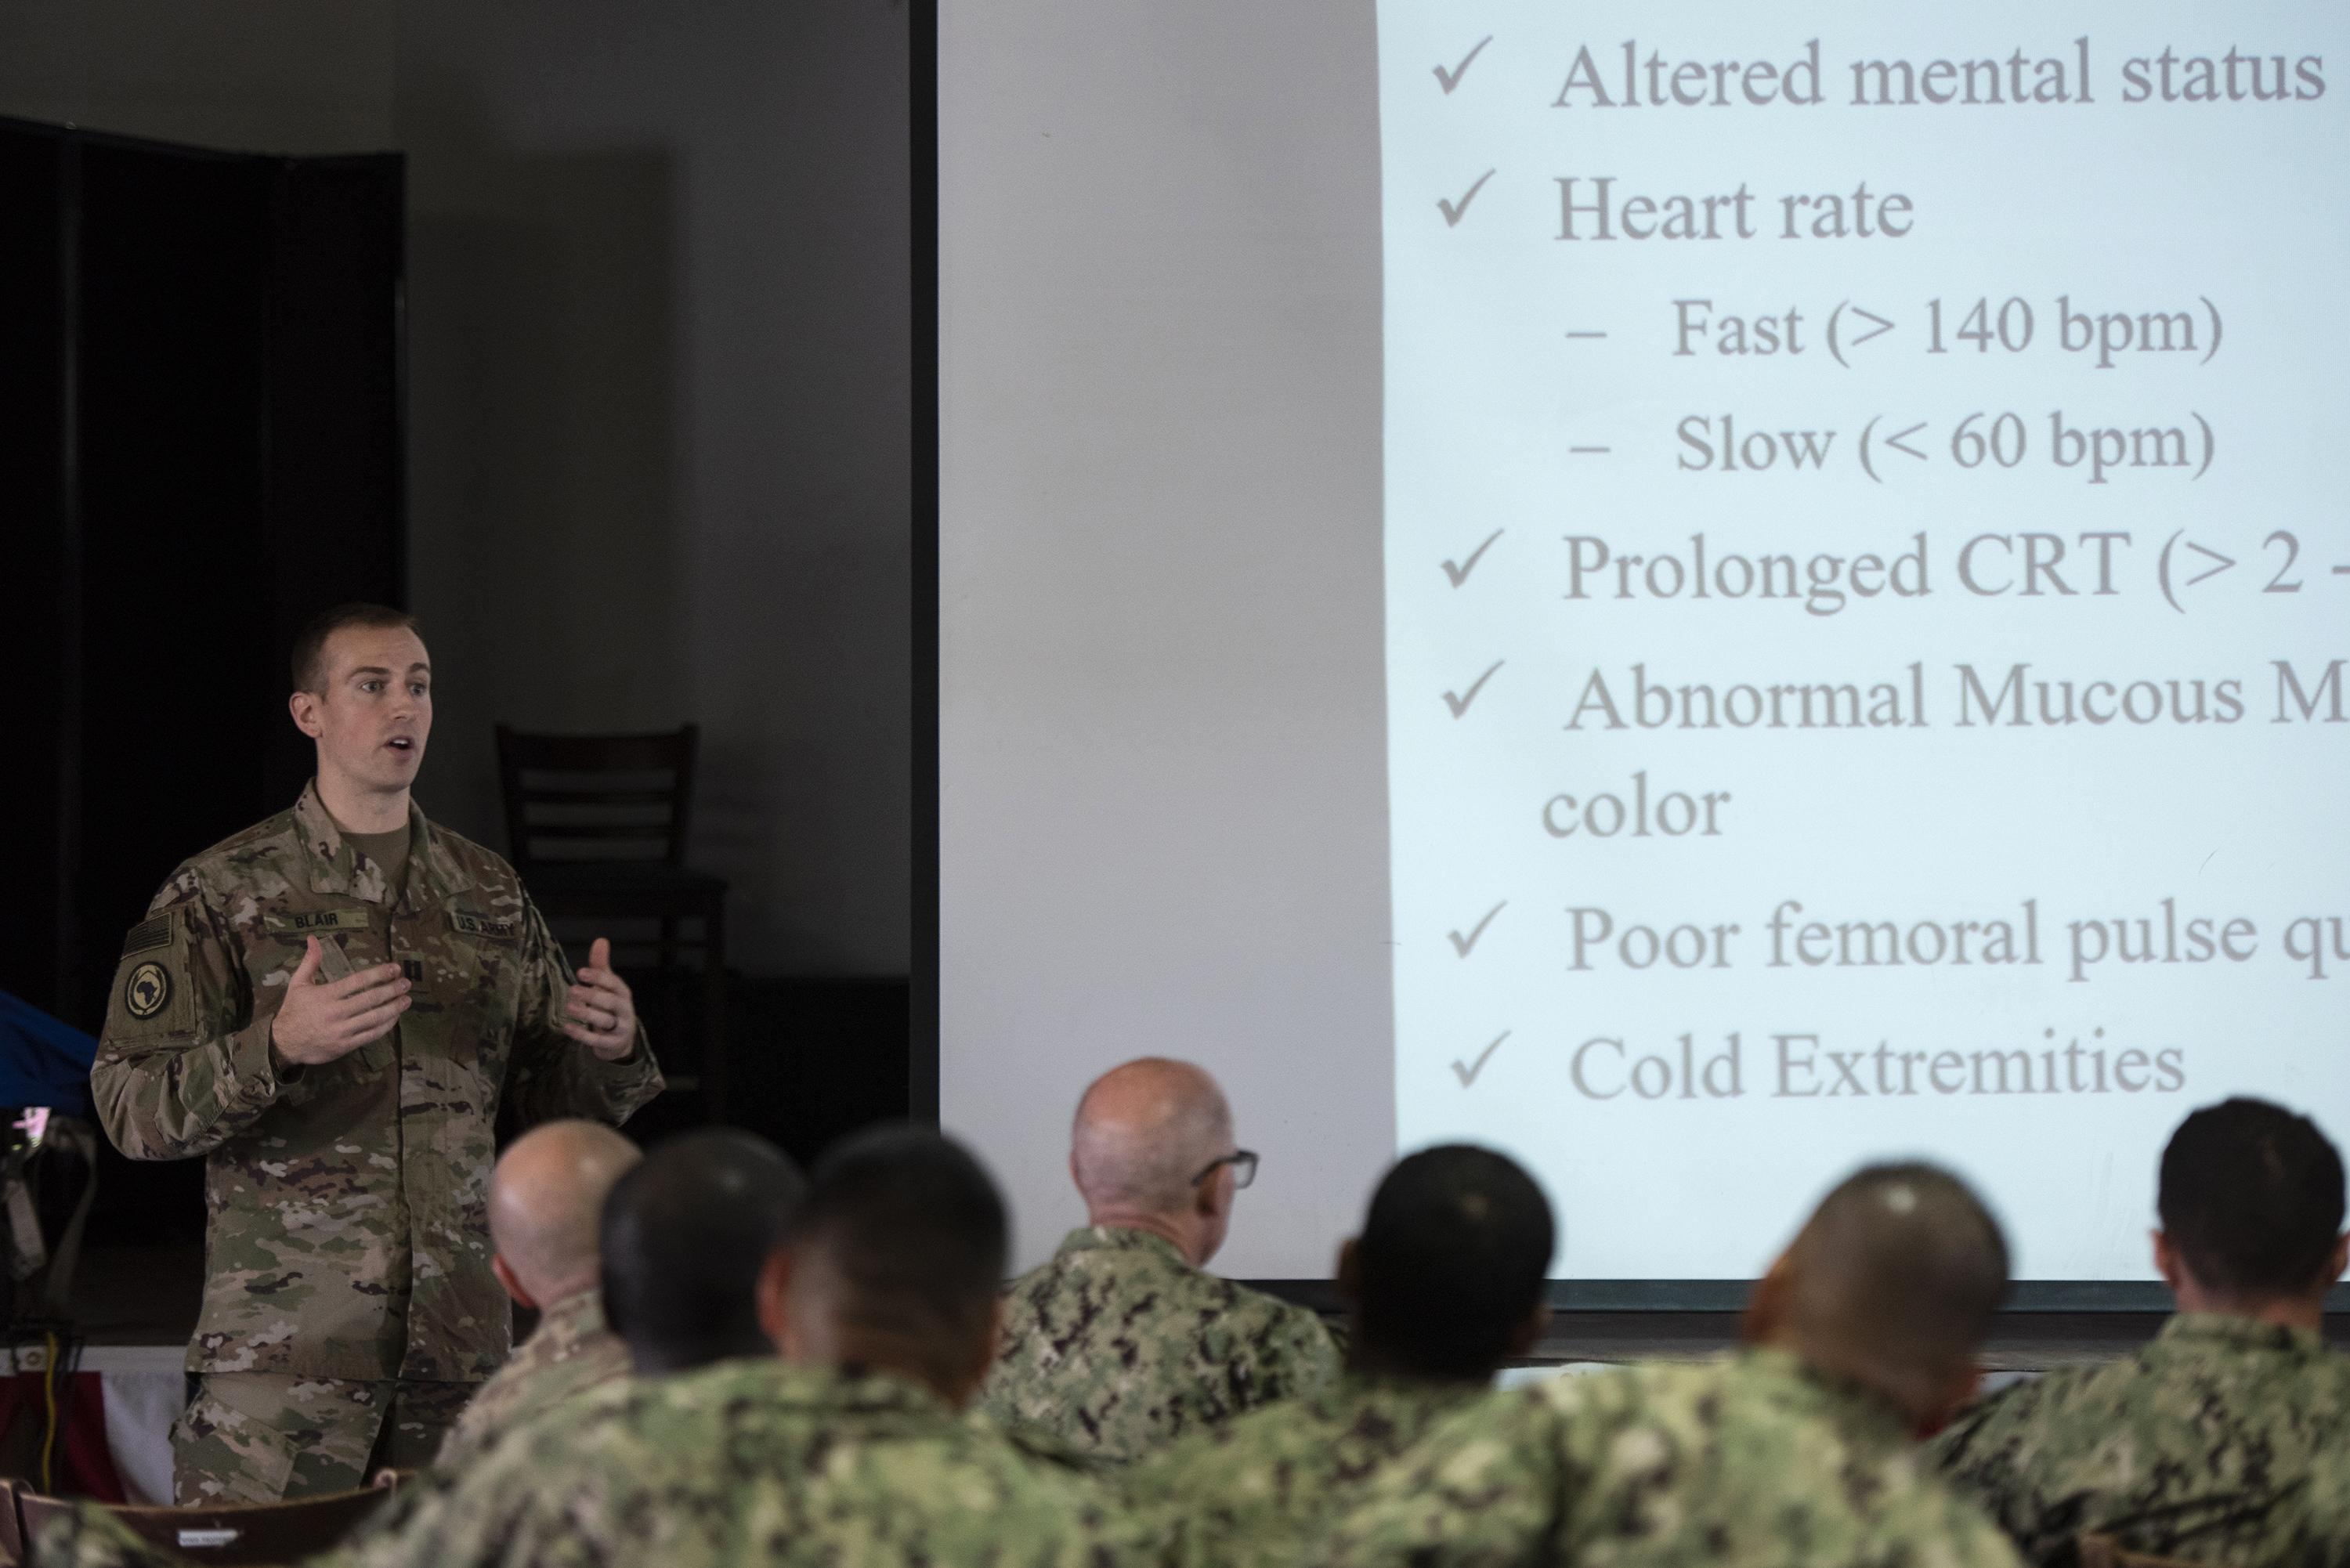 U.S. Army Cpt. Richard Blair, a veterinarian at Camp Lemonnier, teaches canine care techniques, on Camp Lemonnier, Djibouti, Aug. 18, 2018. Pelham was supporting a training event on canine tactical combat casualty care to help familiarize service members with medical backgrounds, on treating canines in the field. (U.S. Air National Guard photo by Master Sgt. Sarah Mattison)